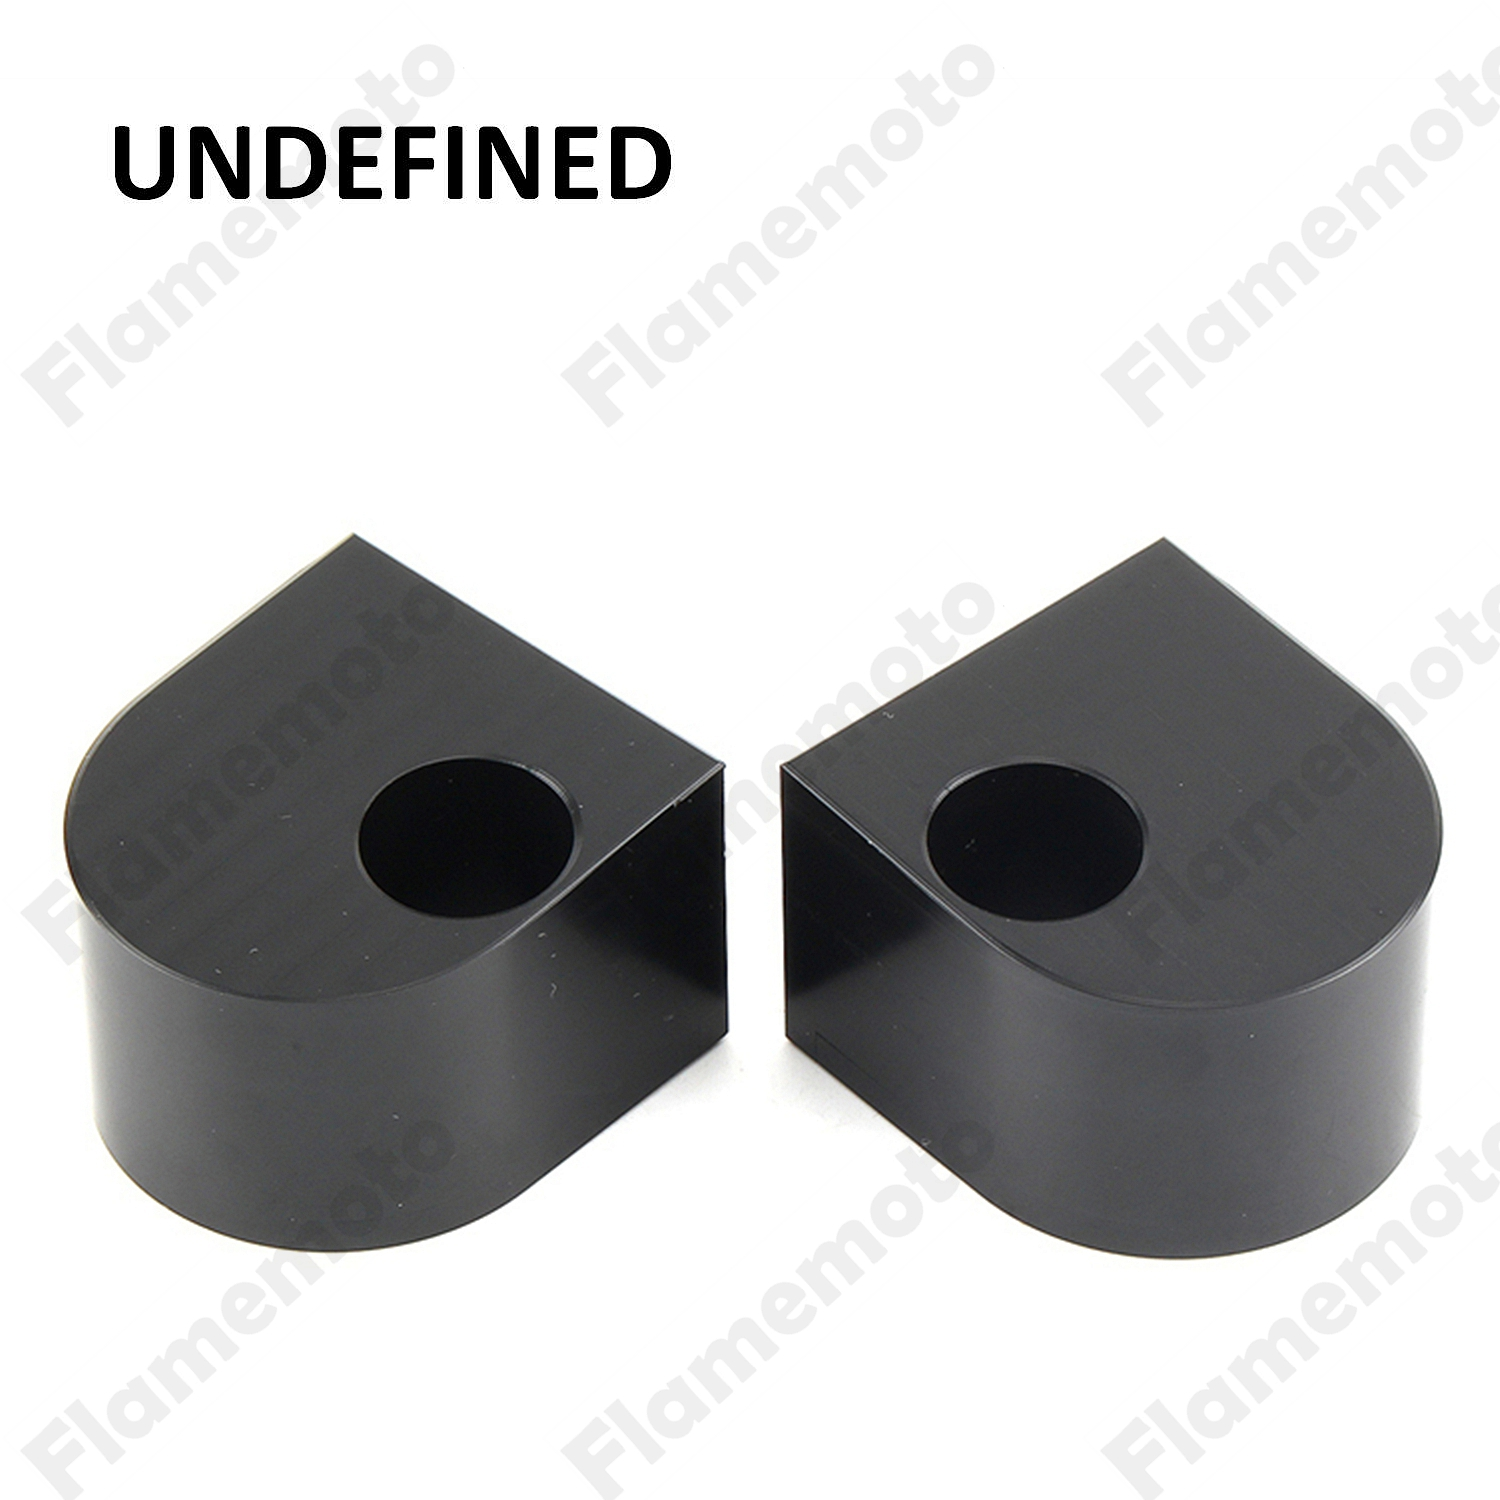 Black Motorcycle Gas Flue Tank Lift Spacers Kit Spacers Motorbike For Victory Octane XC XR Hardball Hard UNDEFINED 1с undefined